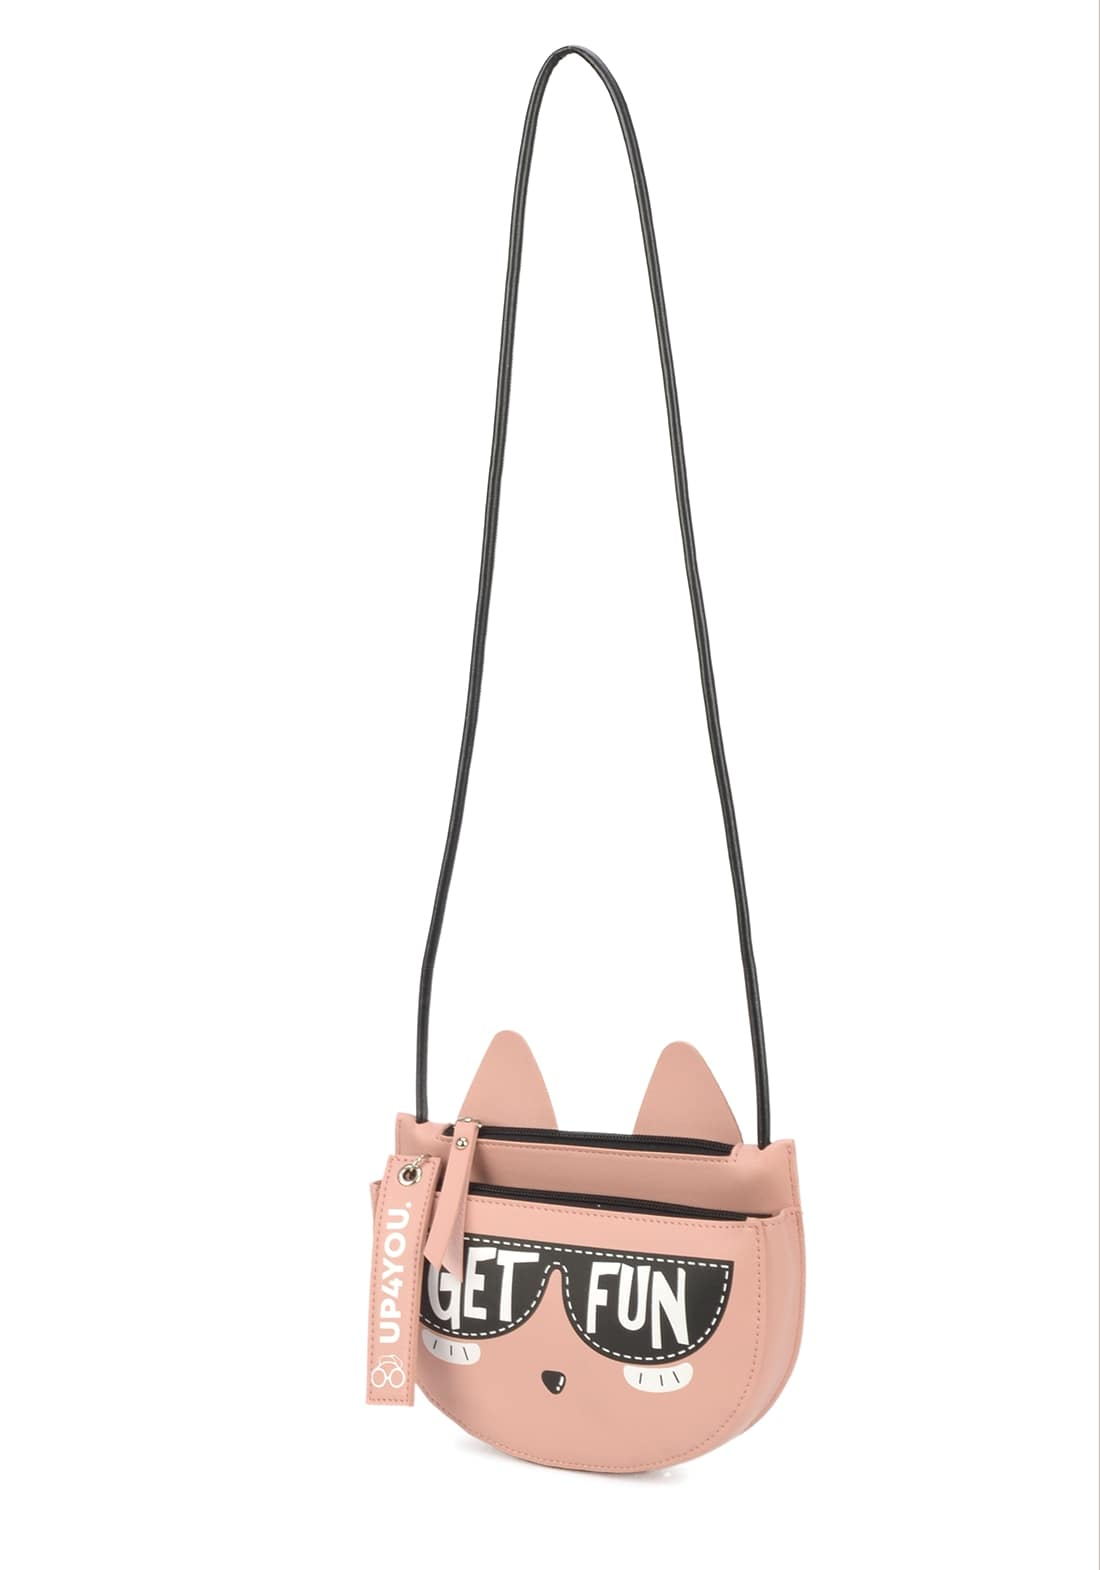 Bolsa Transversal Gatinho Com Alca Up4you Rosa Original